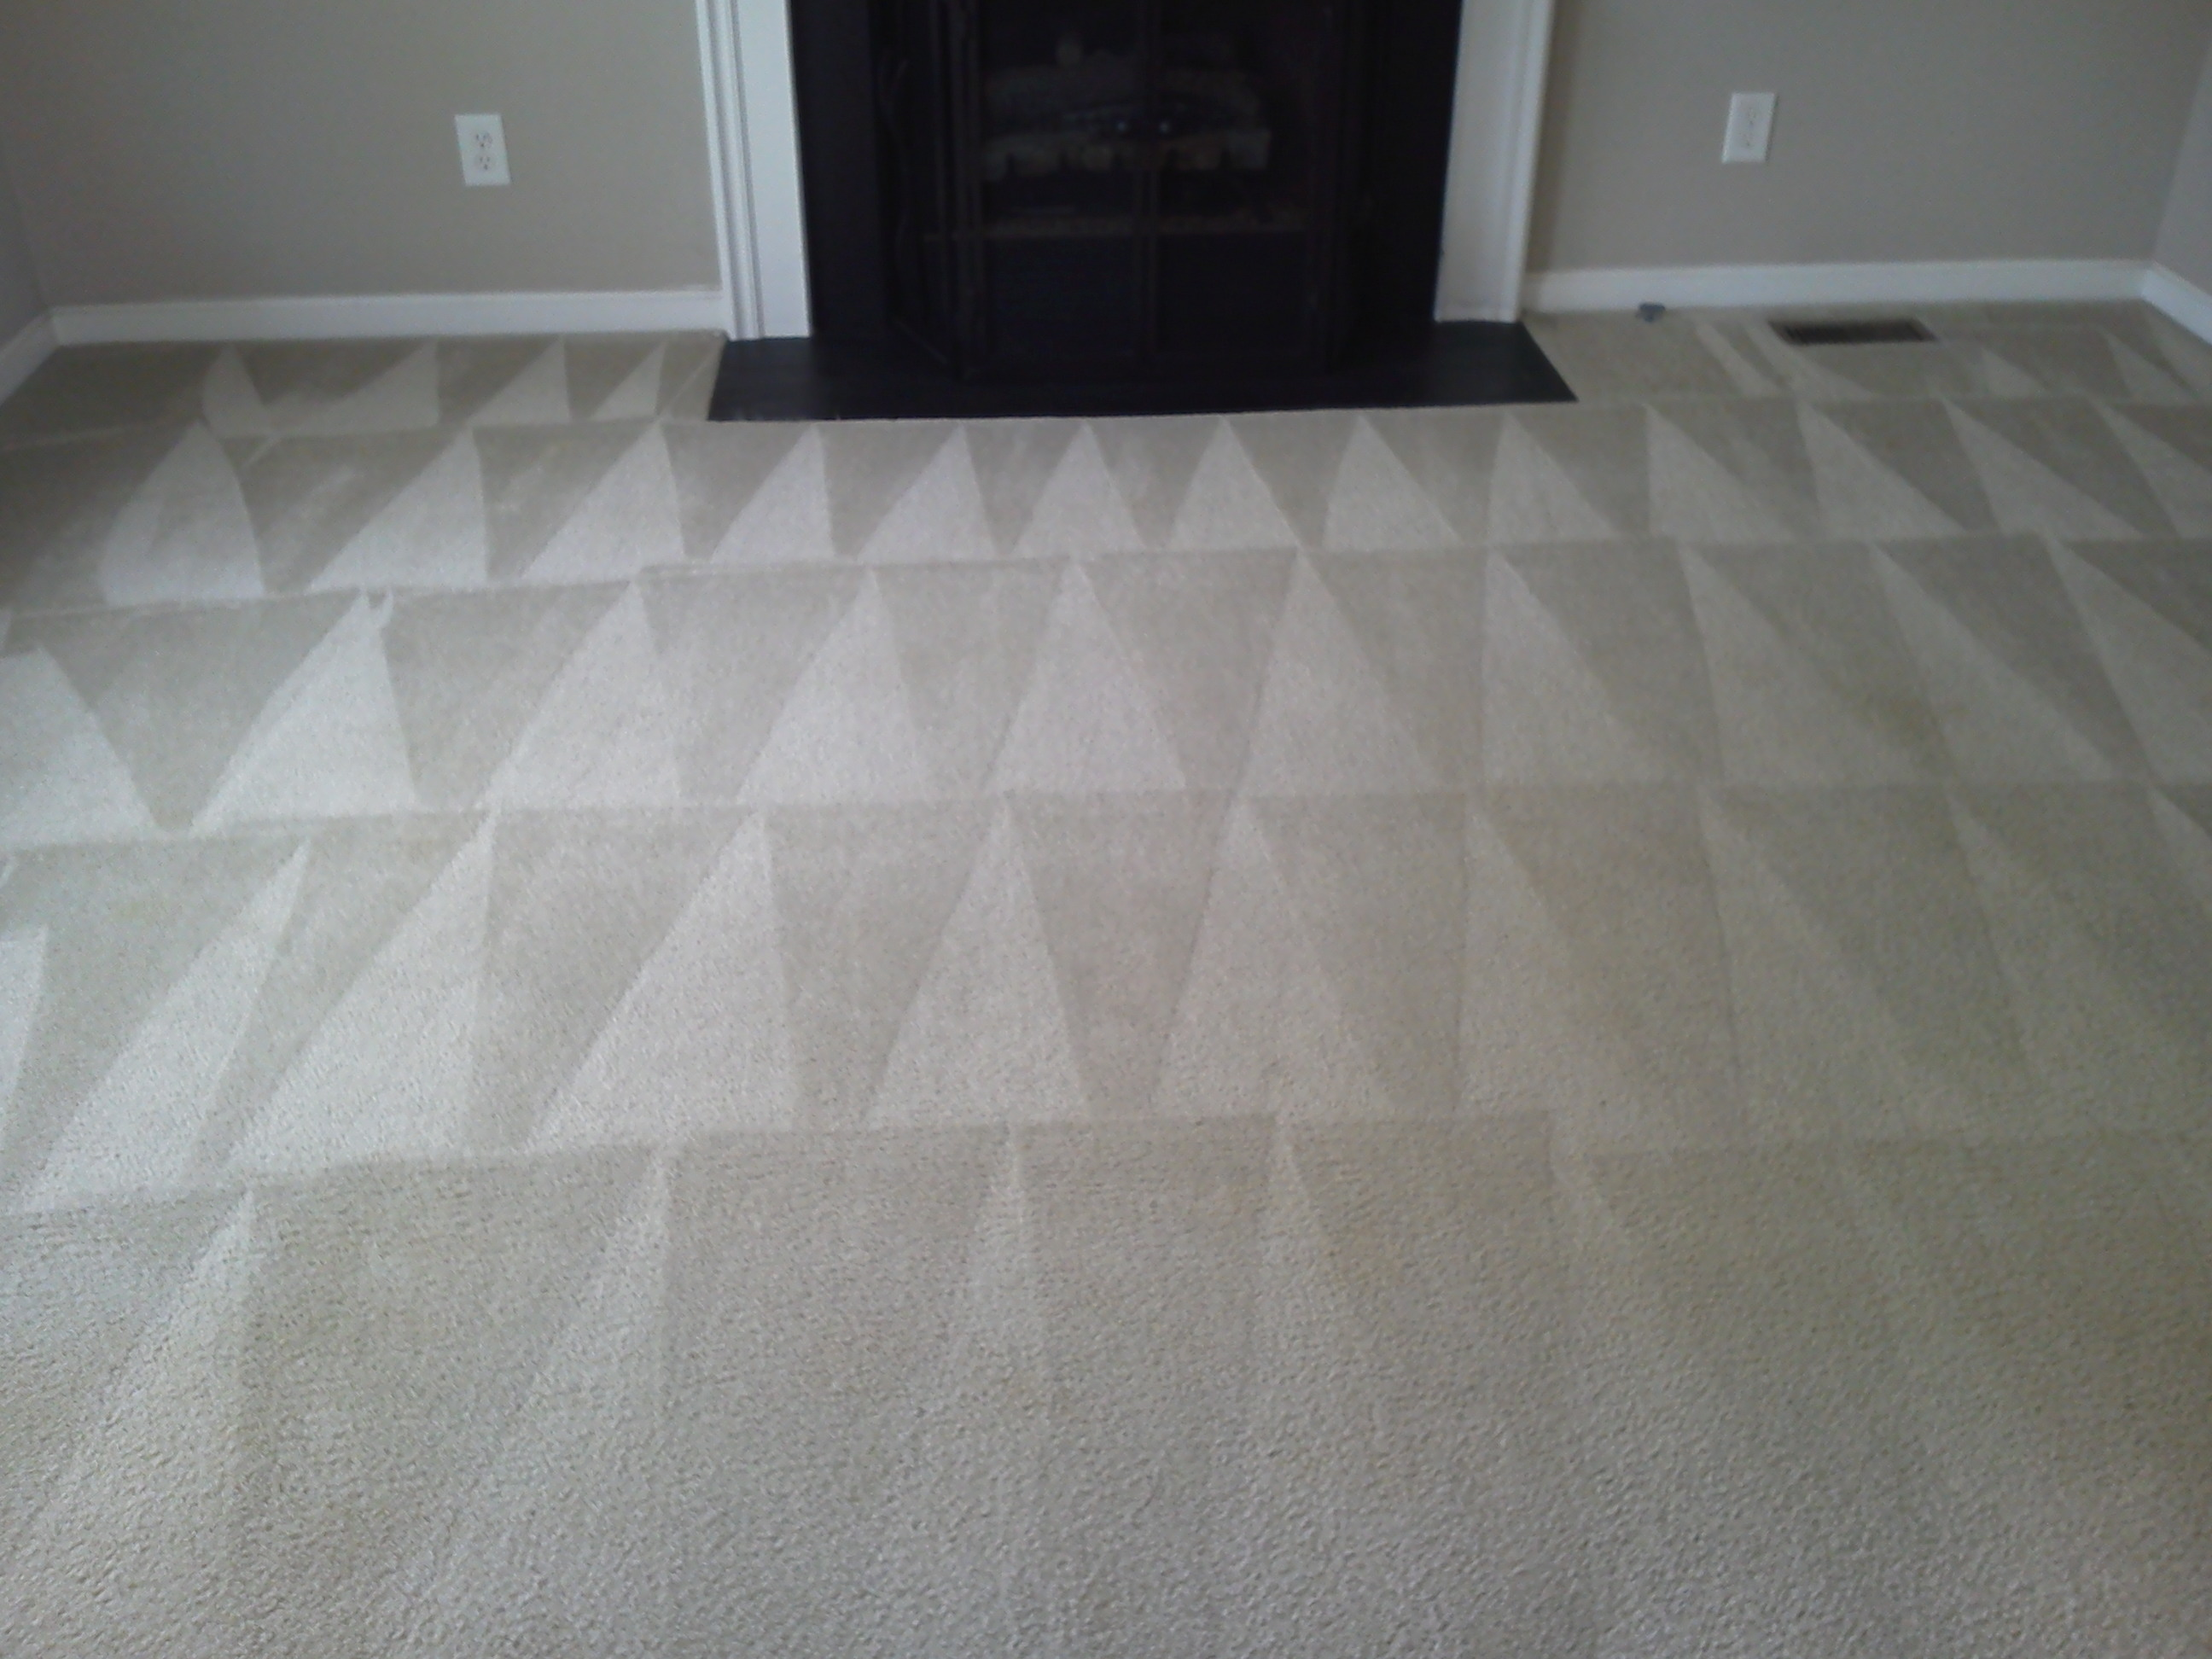 Stafford Carpet Cleaning Pros Pristine Tile Amp Carpet